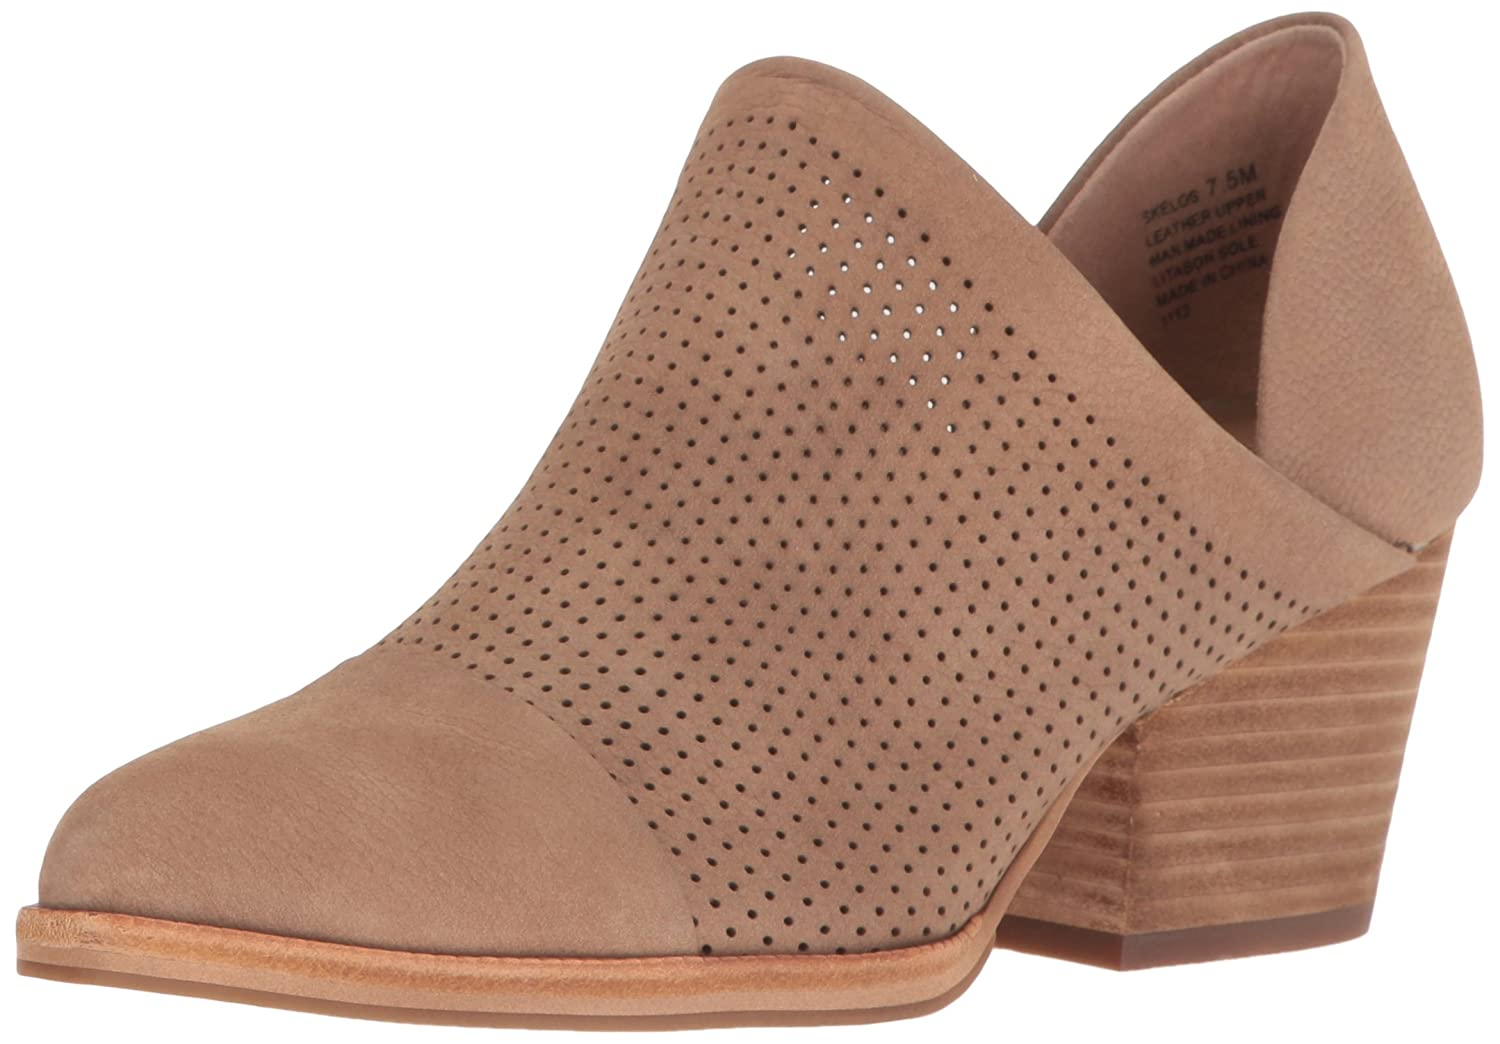 STEVEN by Steve Madden Women's Skelos Ankle Bootie B01KMVERB4 6 M US|Taupe Nubuck